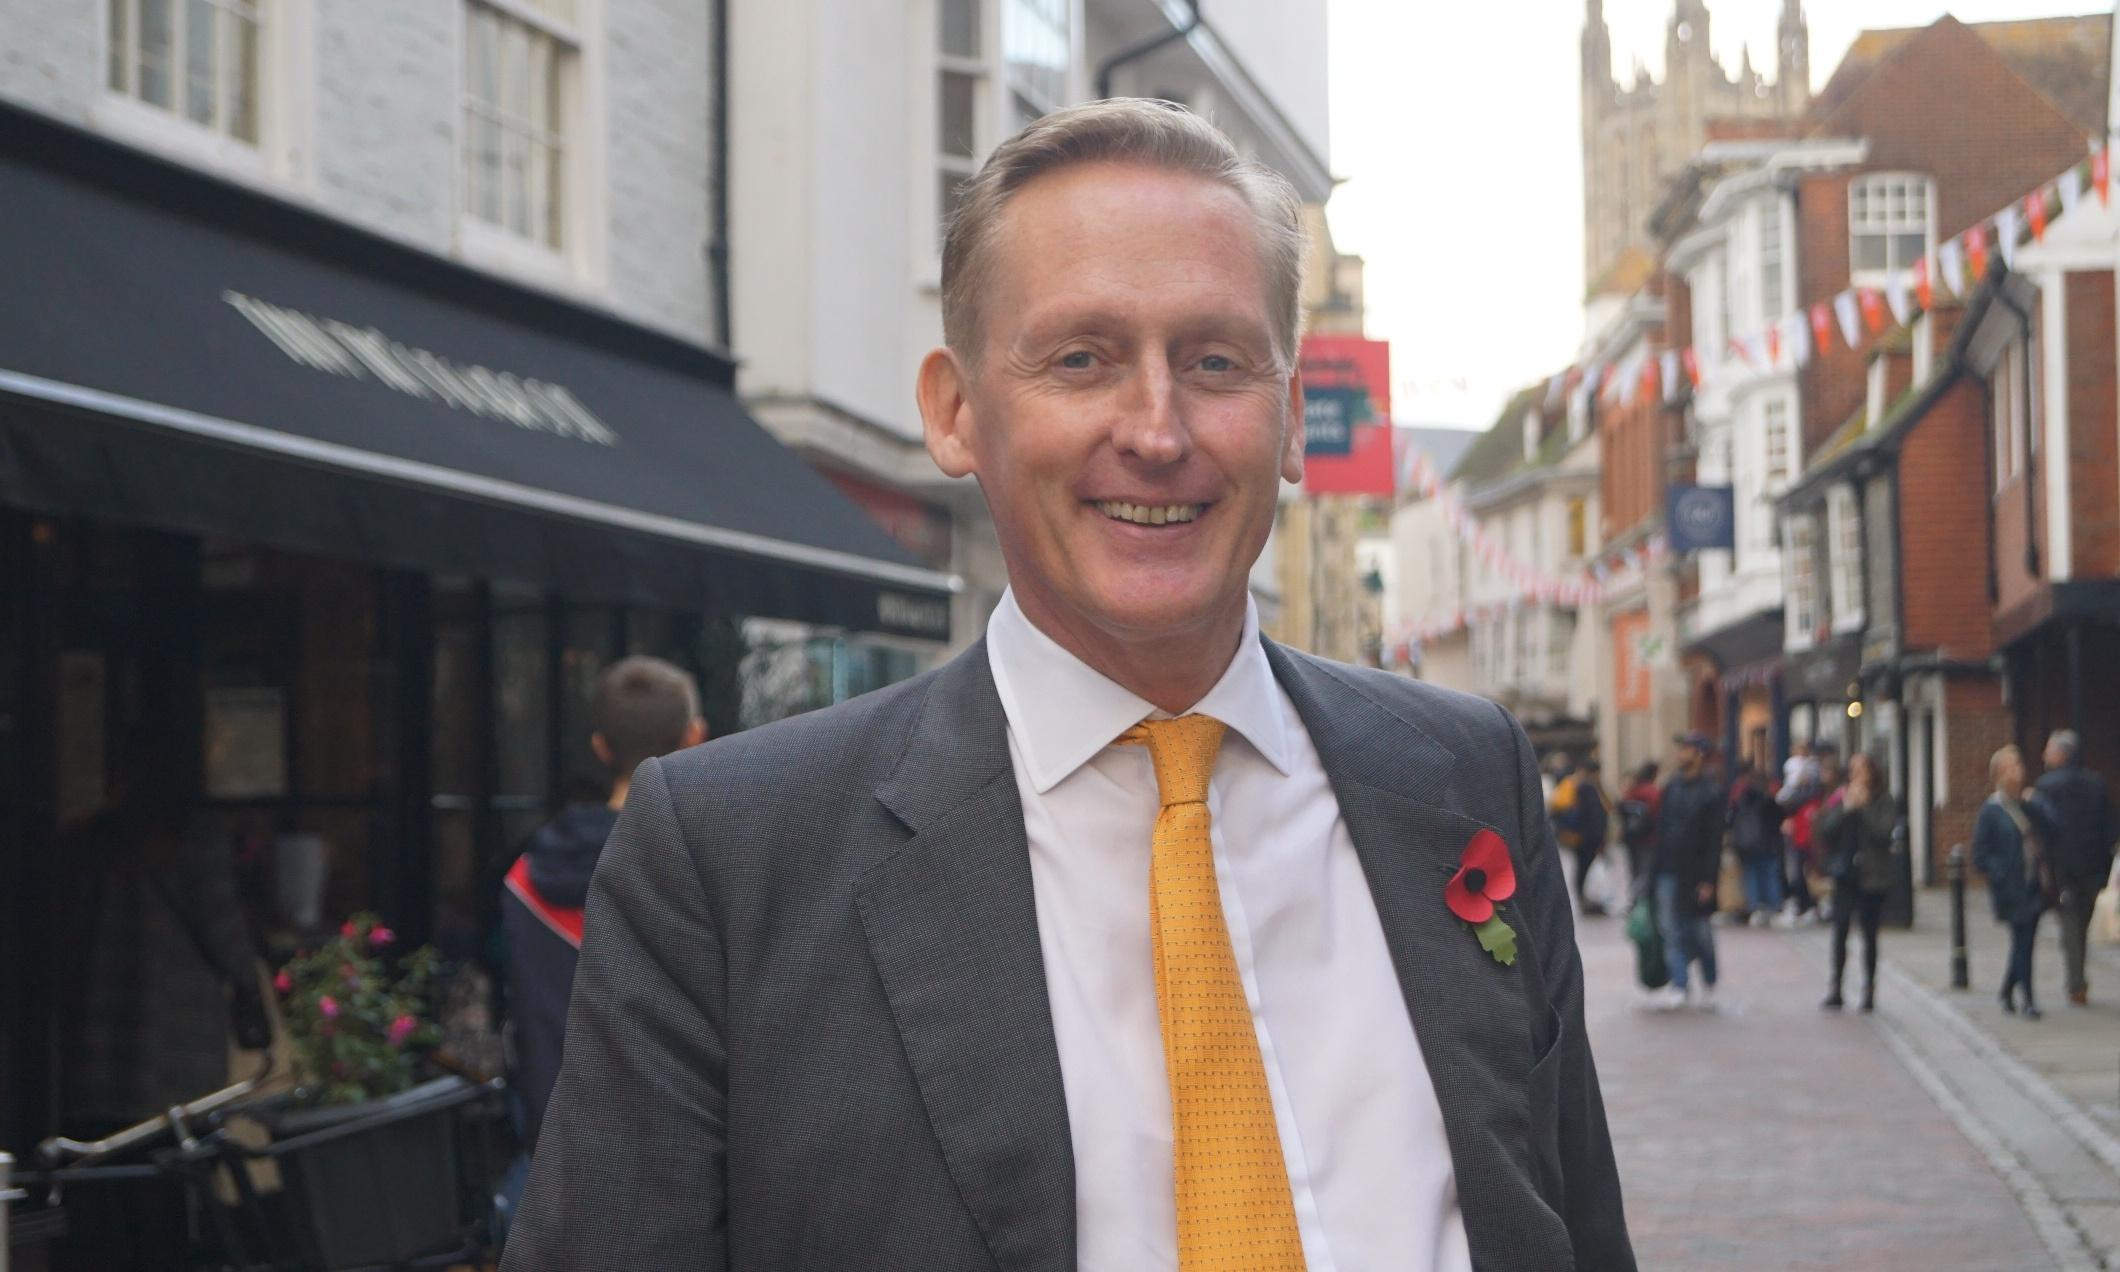 Rift in Lib Dem ranks as candidate stands aside in bid to thwart Tories